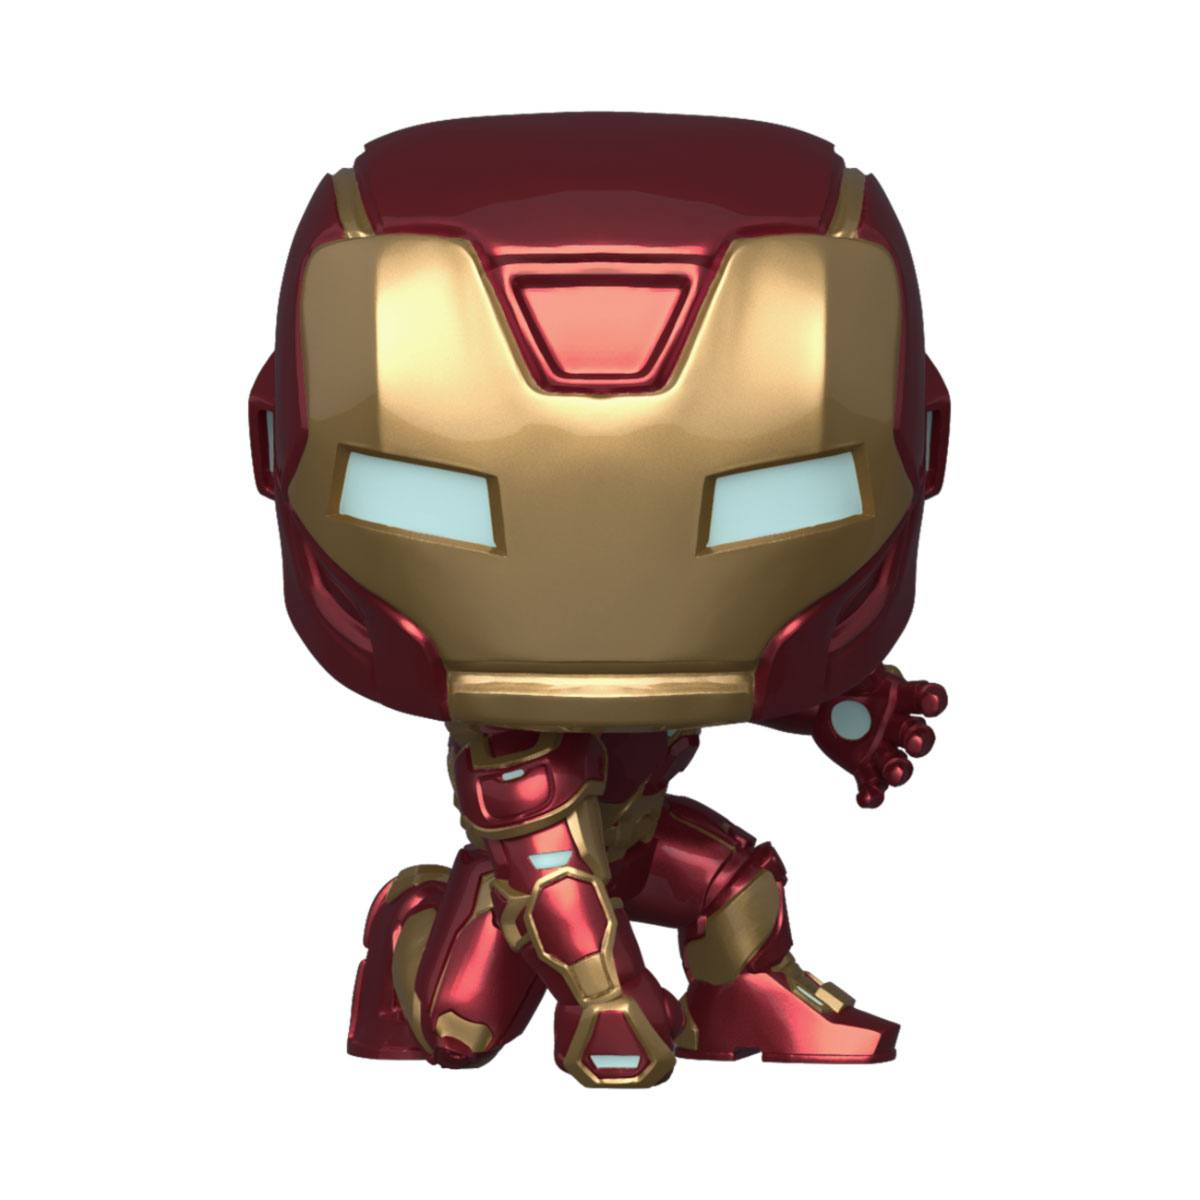 Marvel's Avengers (2020 video game) POP! Marvel Vinyl Figure Iron Man 9 cm